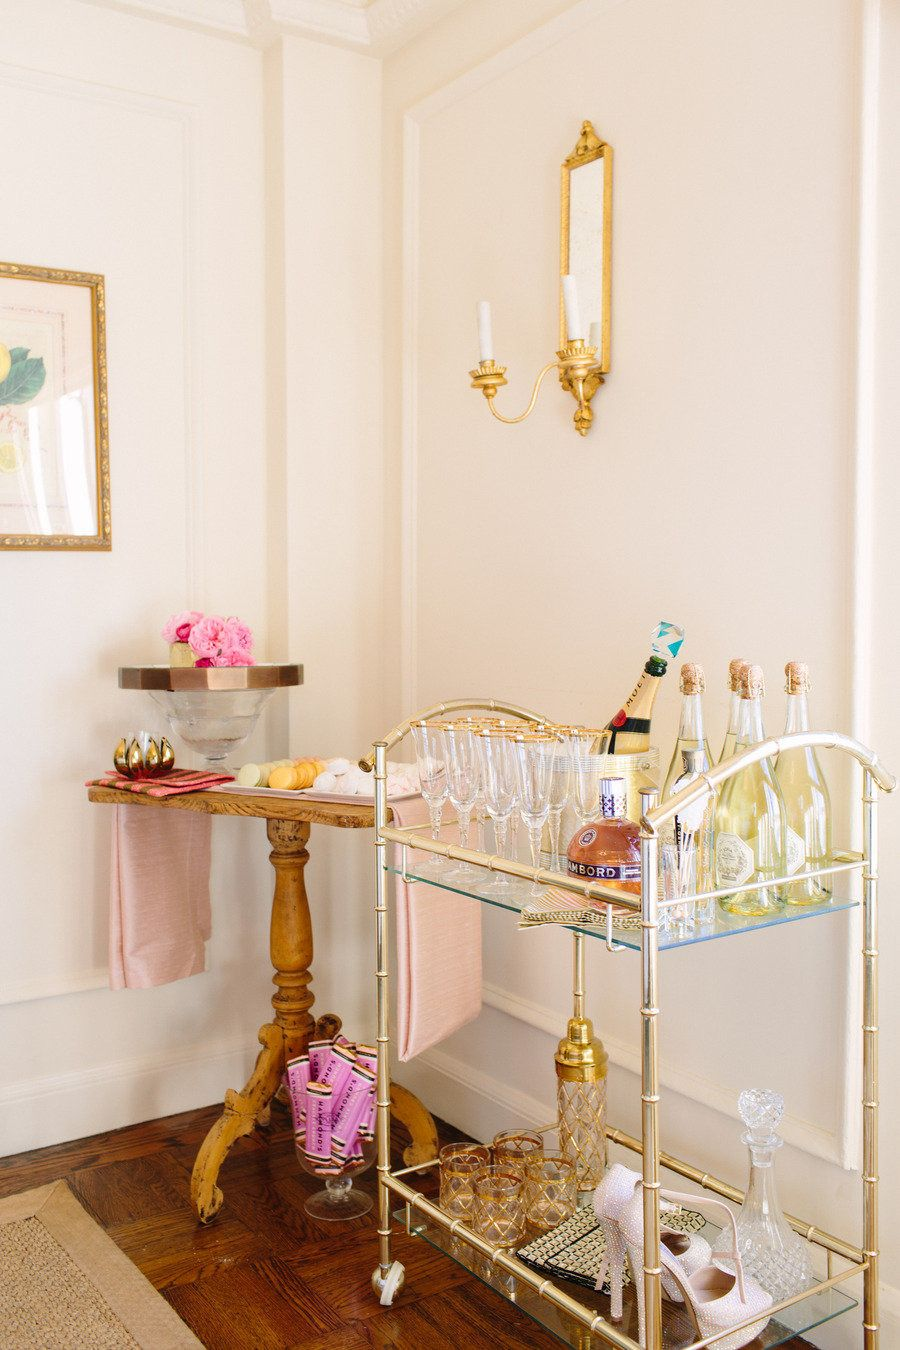 How to stock a bar cart Design & Styling: Aaron Hartselle Creative - aaronhartsellecreative.com/ Photography: Bess Friday - bessfriday.com/ View entire slideshow: How to Stock a Bar Cart on http://www.stylemepretty.com/collection/171/